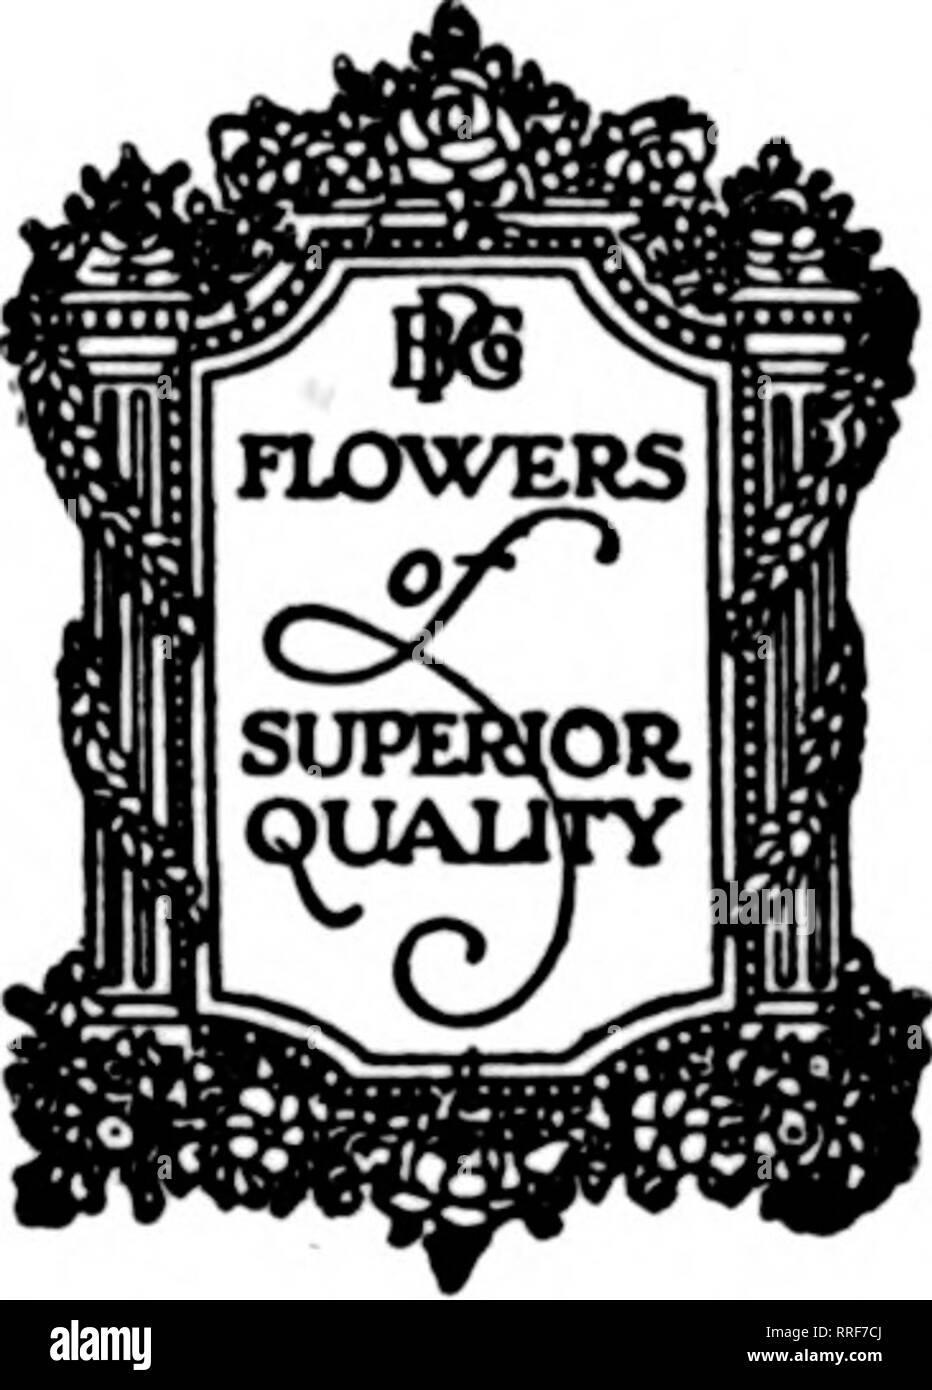 Florists Review Microform Floriculture Dbcembeb 9 1920 The